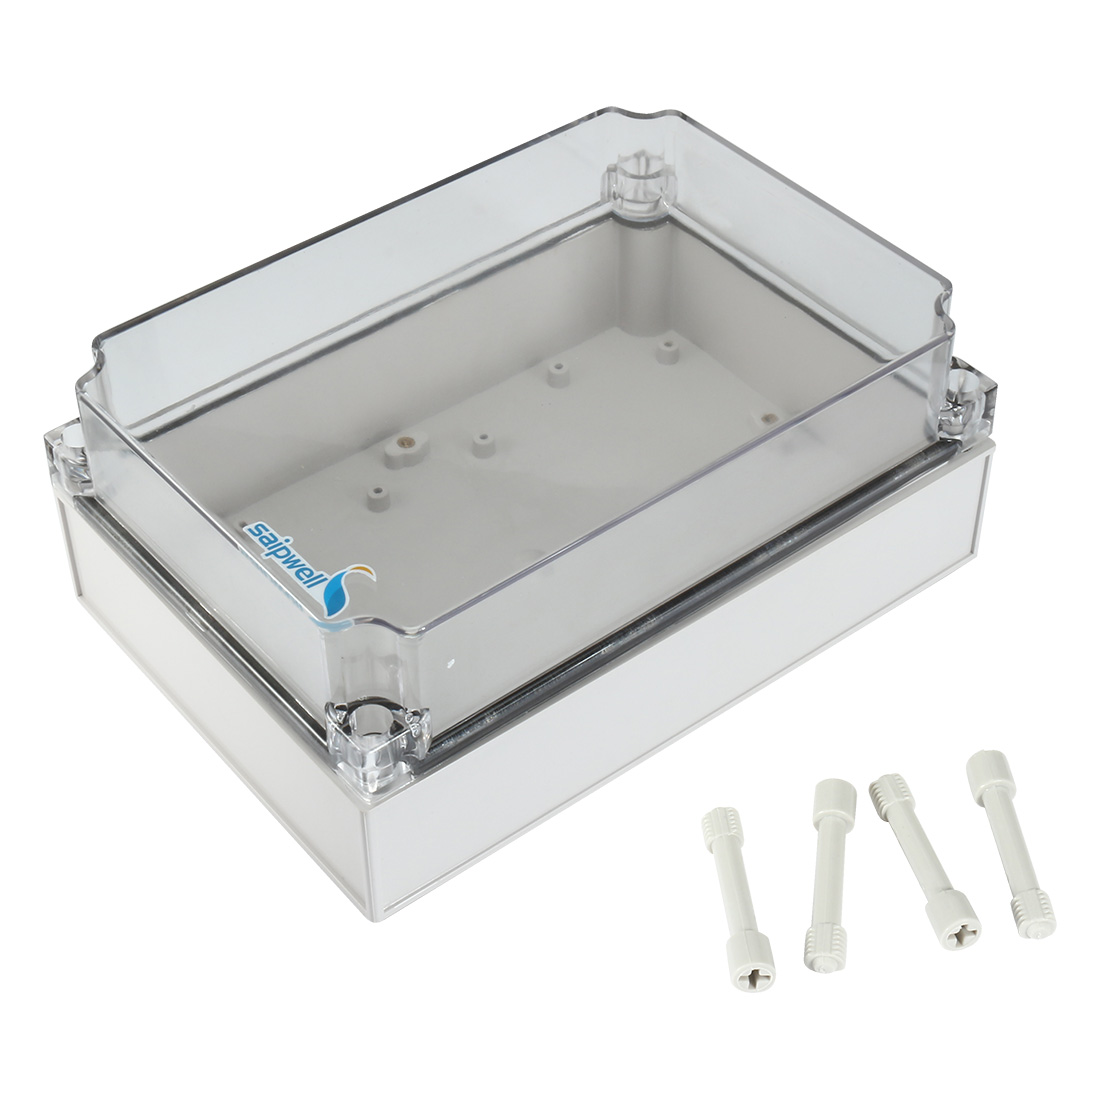 "6.9""x9.8""x3.9""(175mmx250mmx100mm) ABS Junction Box Universal Project Enclosure w PC Transparent Cover"